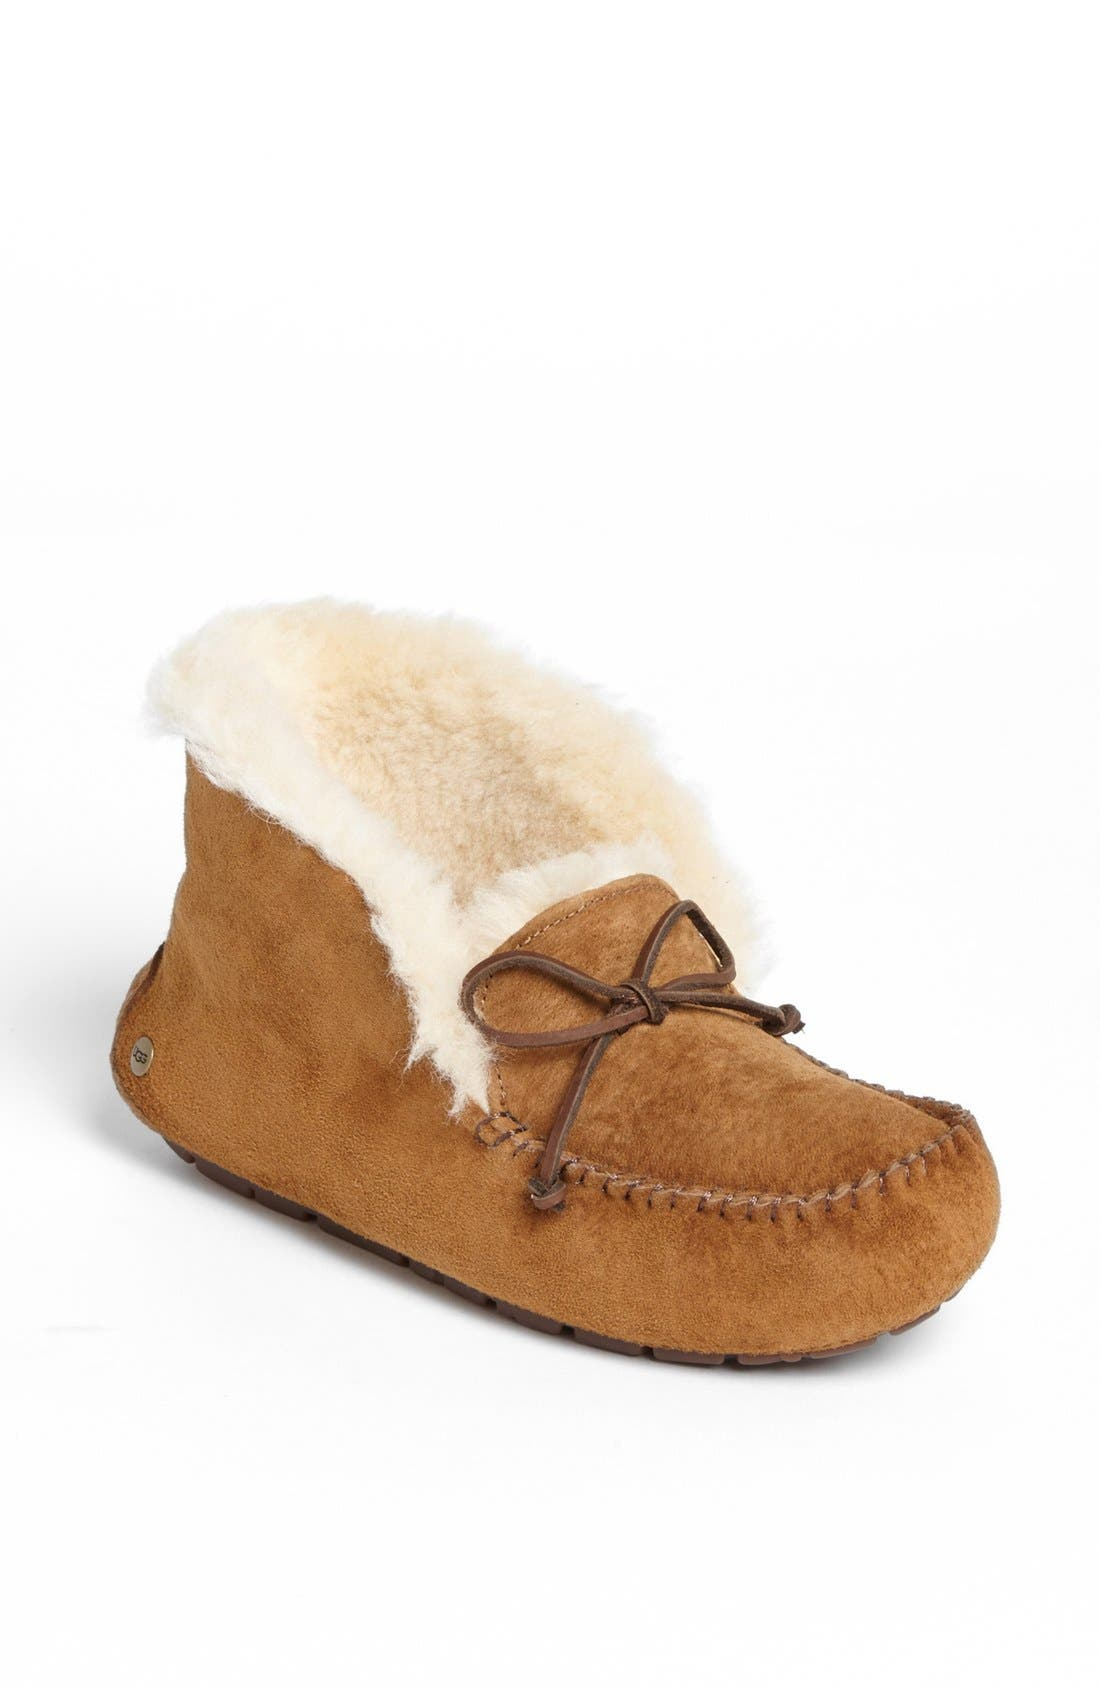 UGGpure<sup>™</sup> Alena Suede Slipper Bootie,                             Main thumbnail 1, color,                             CHESTNUT